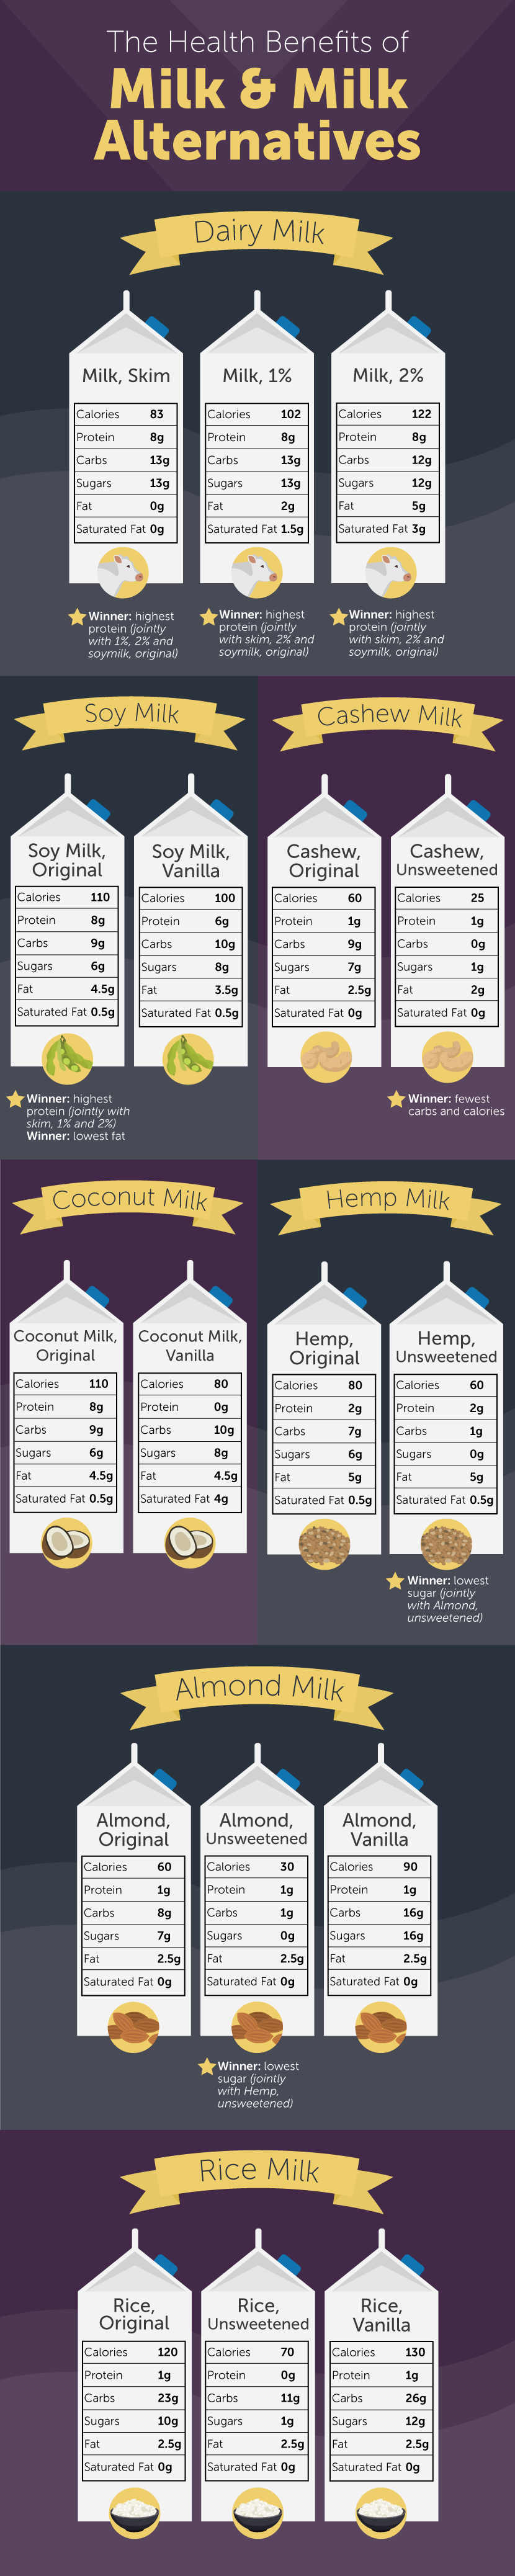 Health Benefits of Milk Alternatives - 6 Nutritious Milk Alternatives to Try